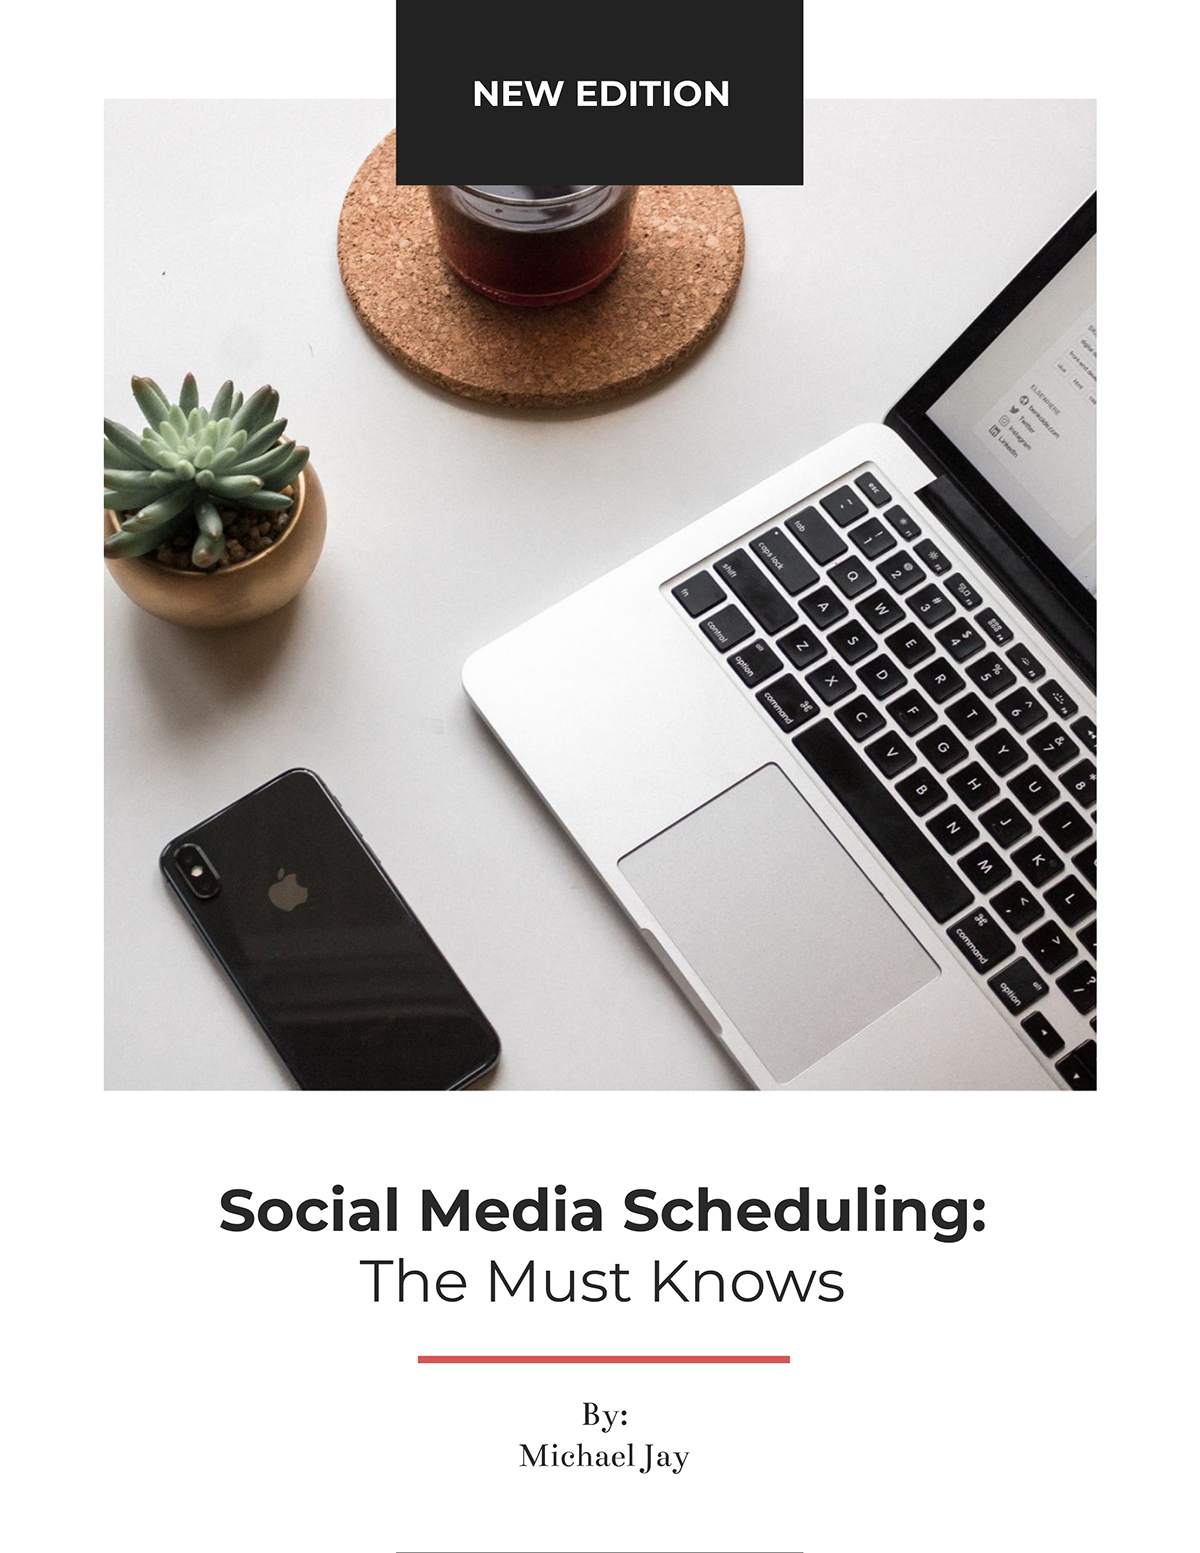 Social media scheduling lead magnet template available in Visme.